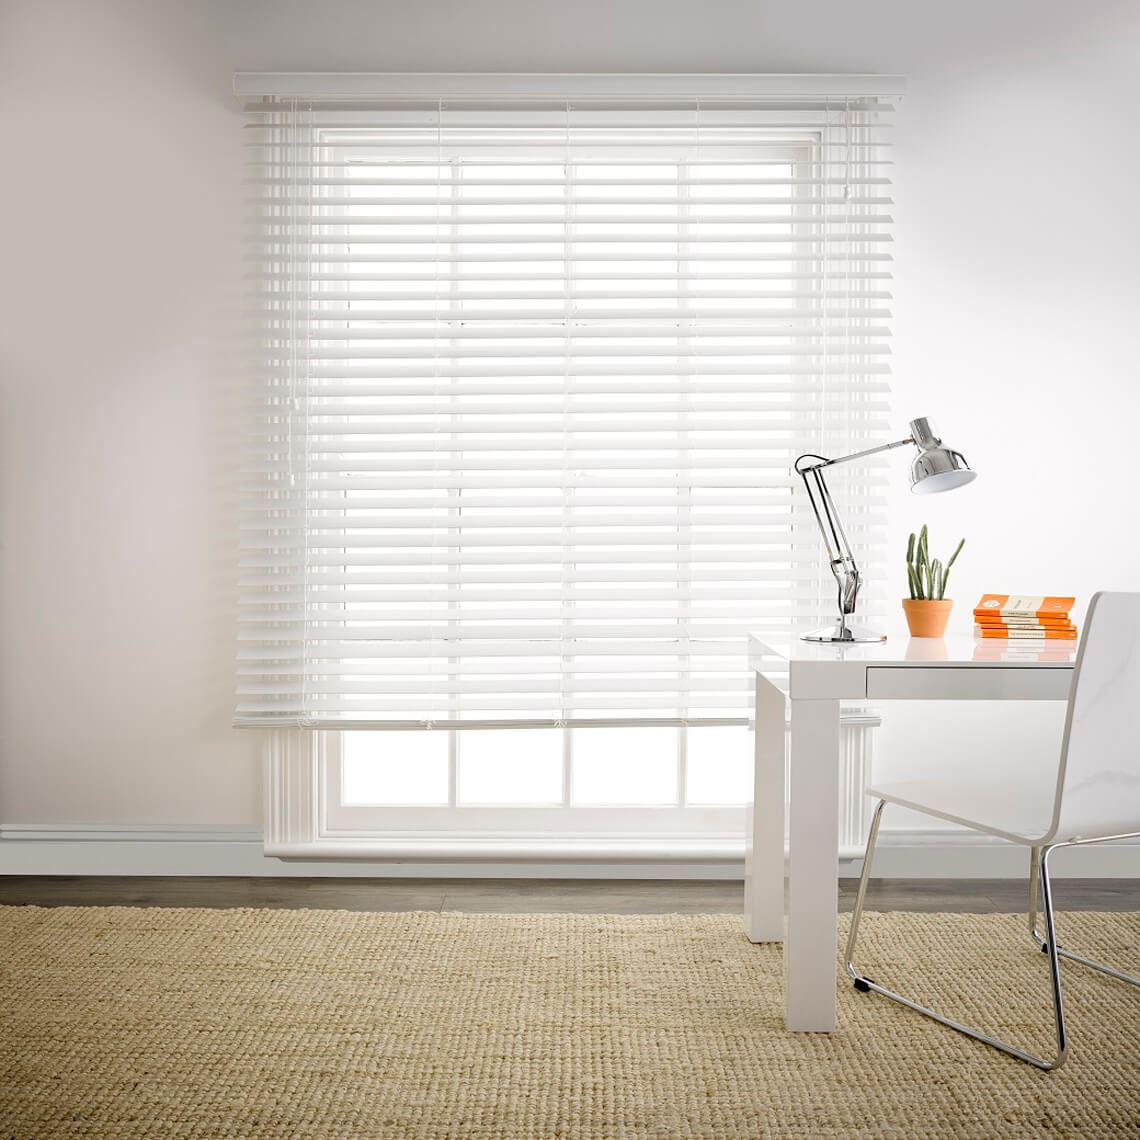 Beaumont Privacy Blind Size W 180cm x D 6cm x H 137cm in White Polyvinyl chloride Freedom by Freedom, a Curtains for sale on Style Sourcebook